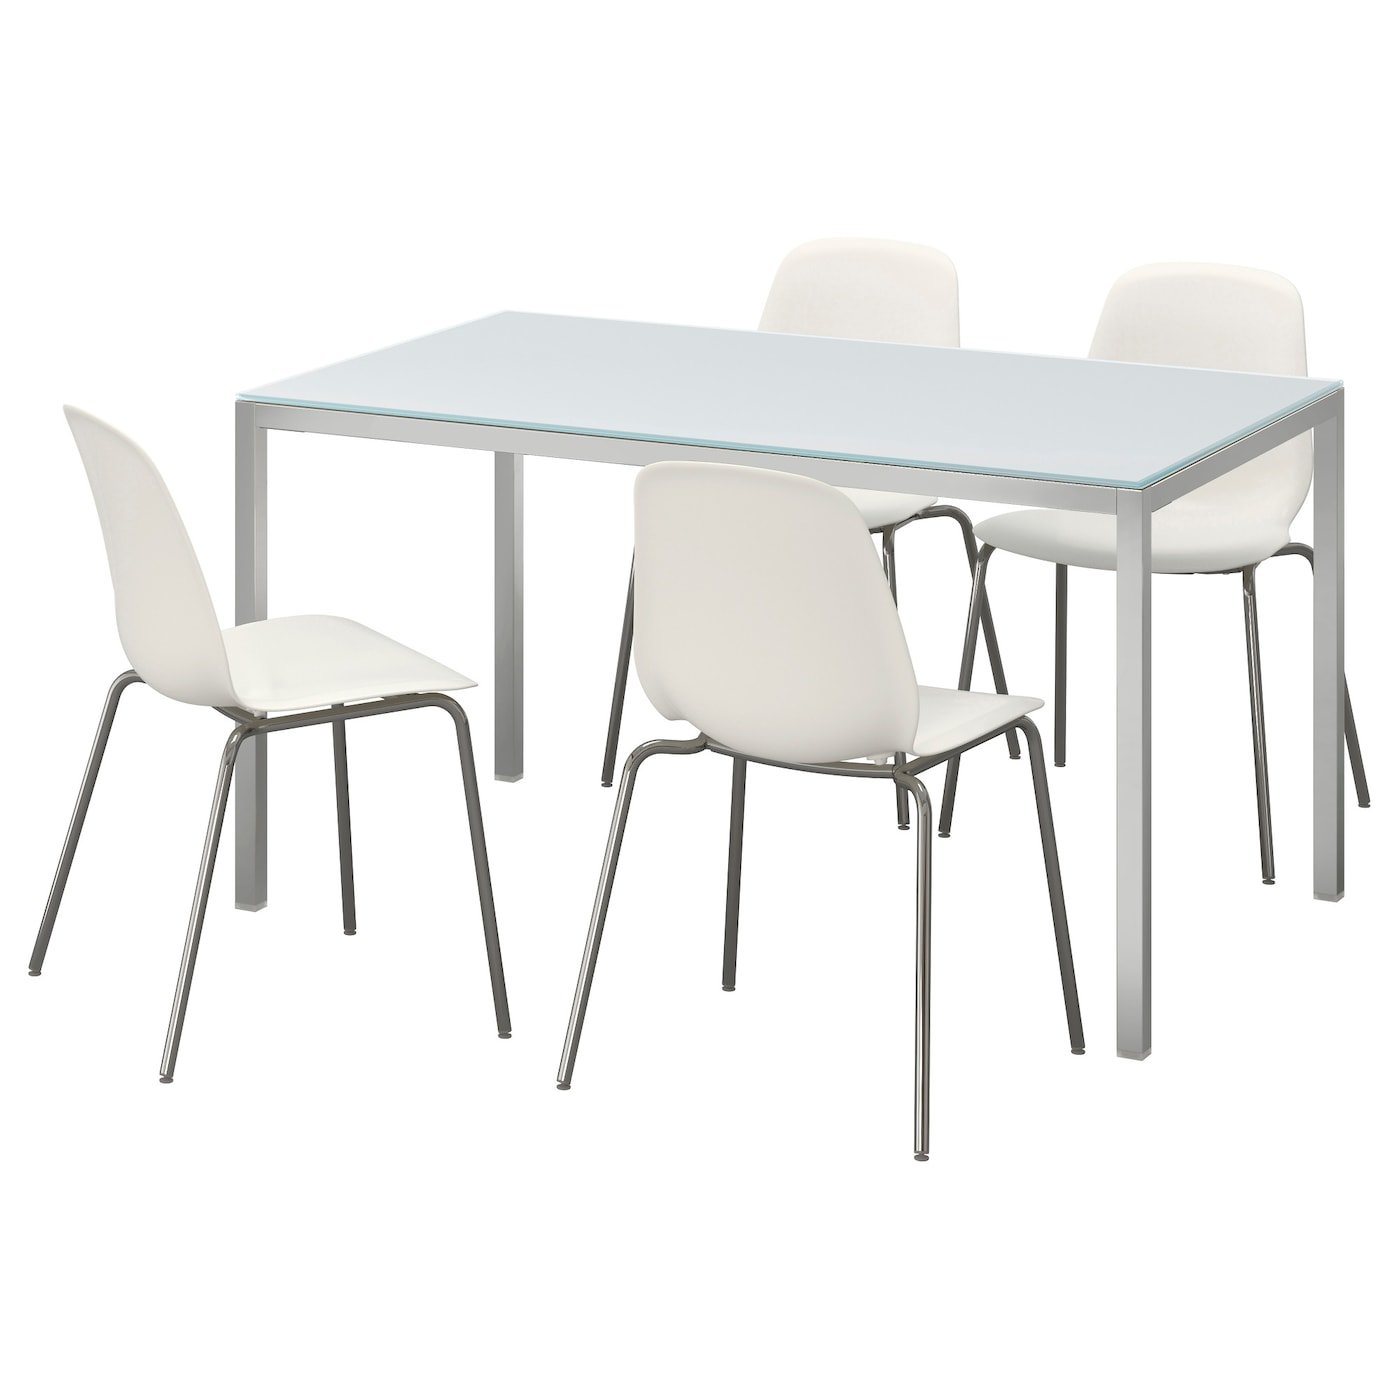 Torsby leifarne table and 4 chairs glass white white 135 for Chaise 65 cm ikea